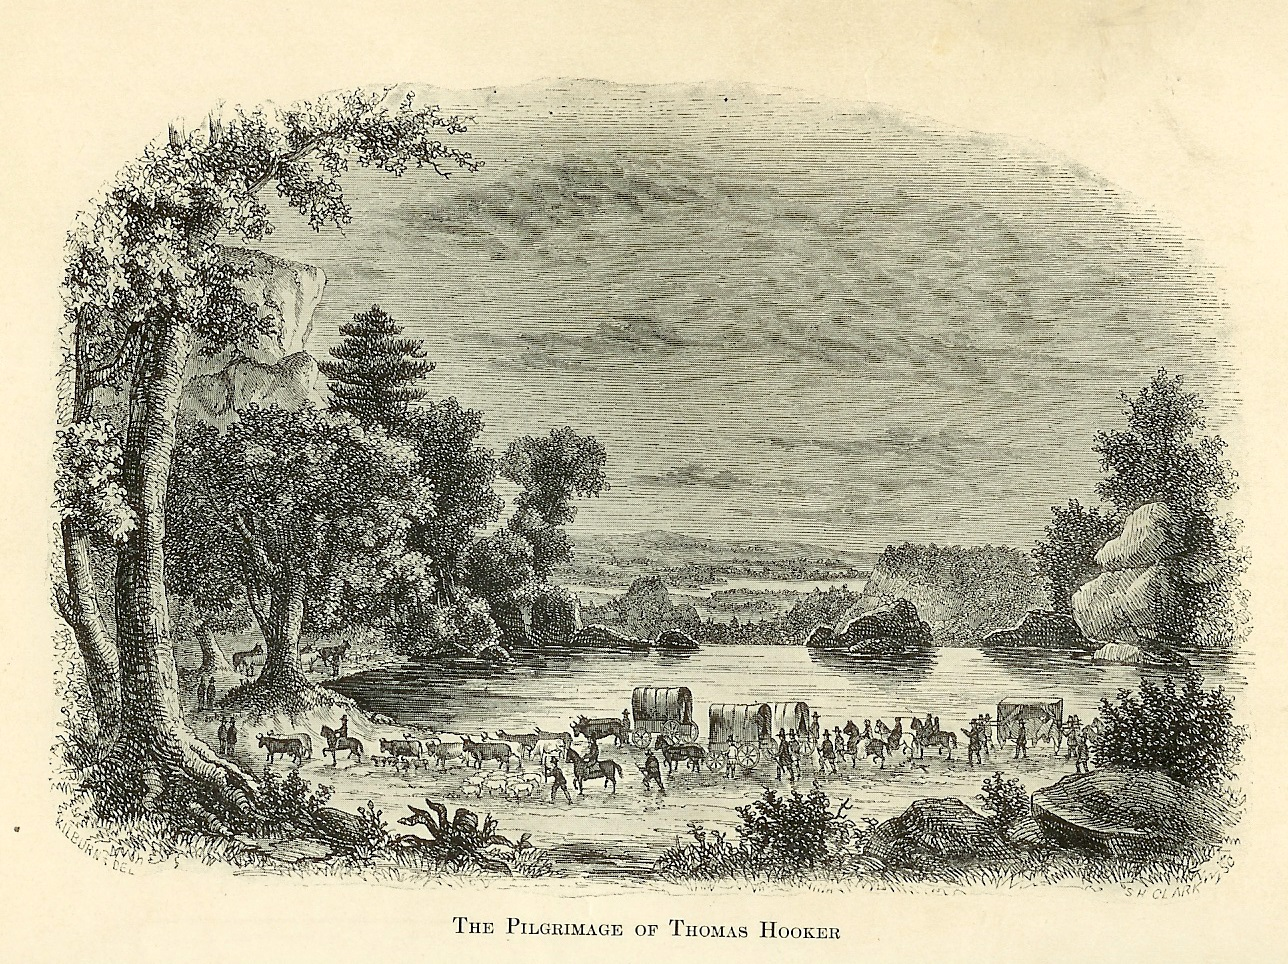 Thomas Hooker's Journey to Connecticut